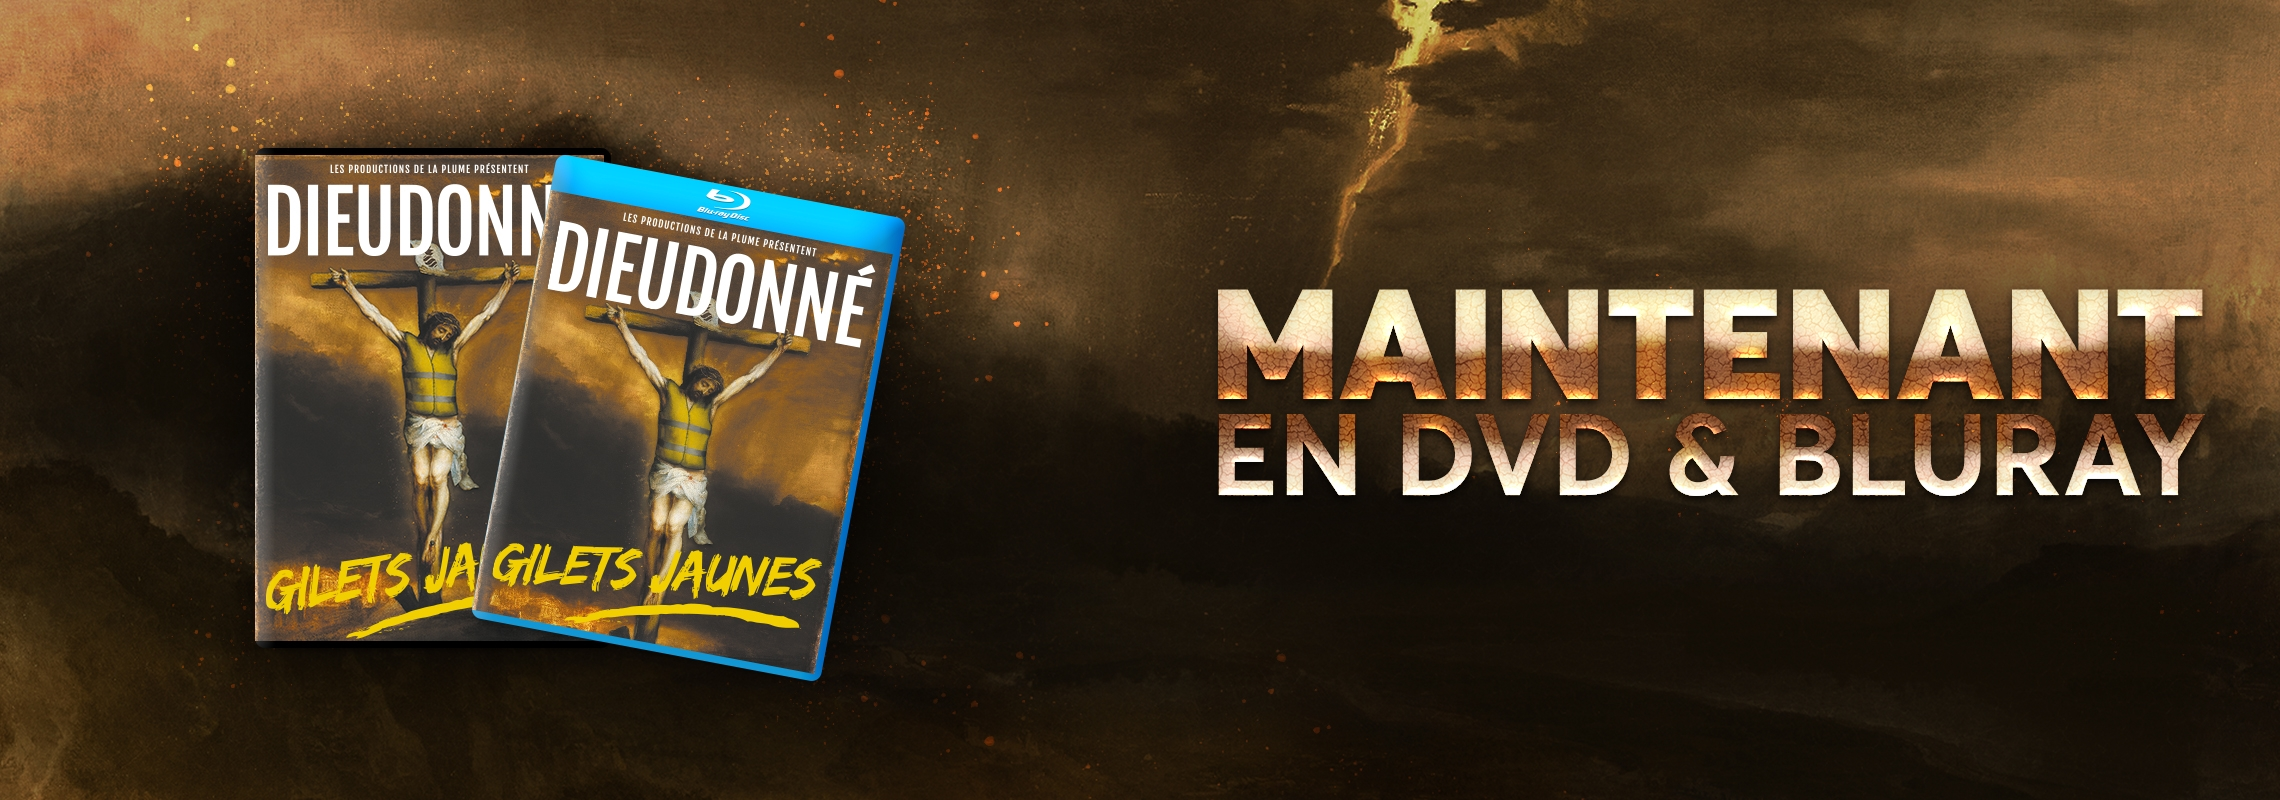 Gilets Jaunes en DVD et Bluray